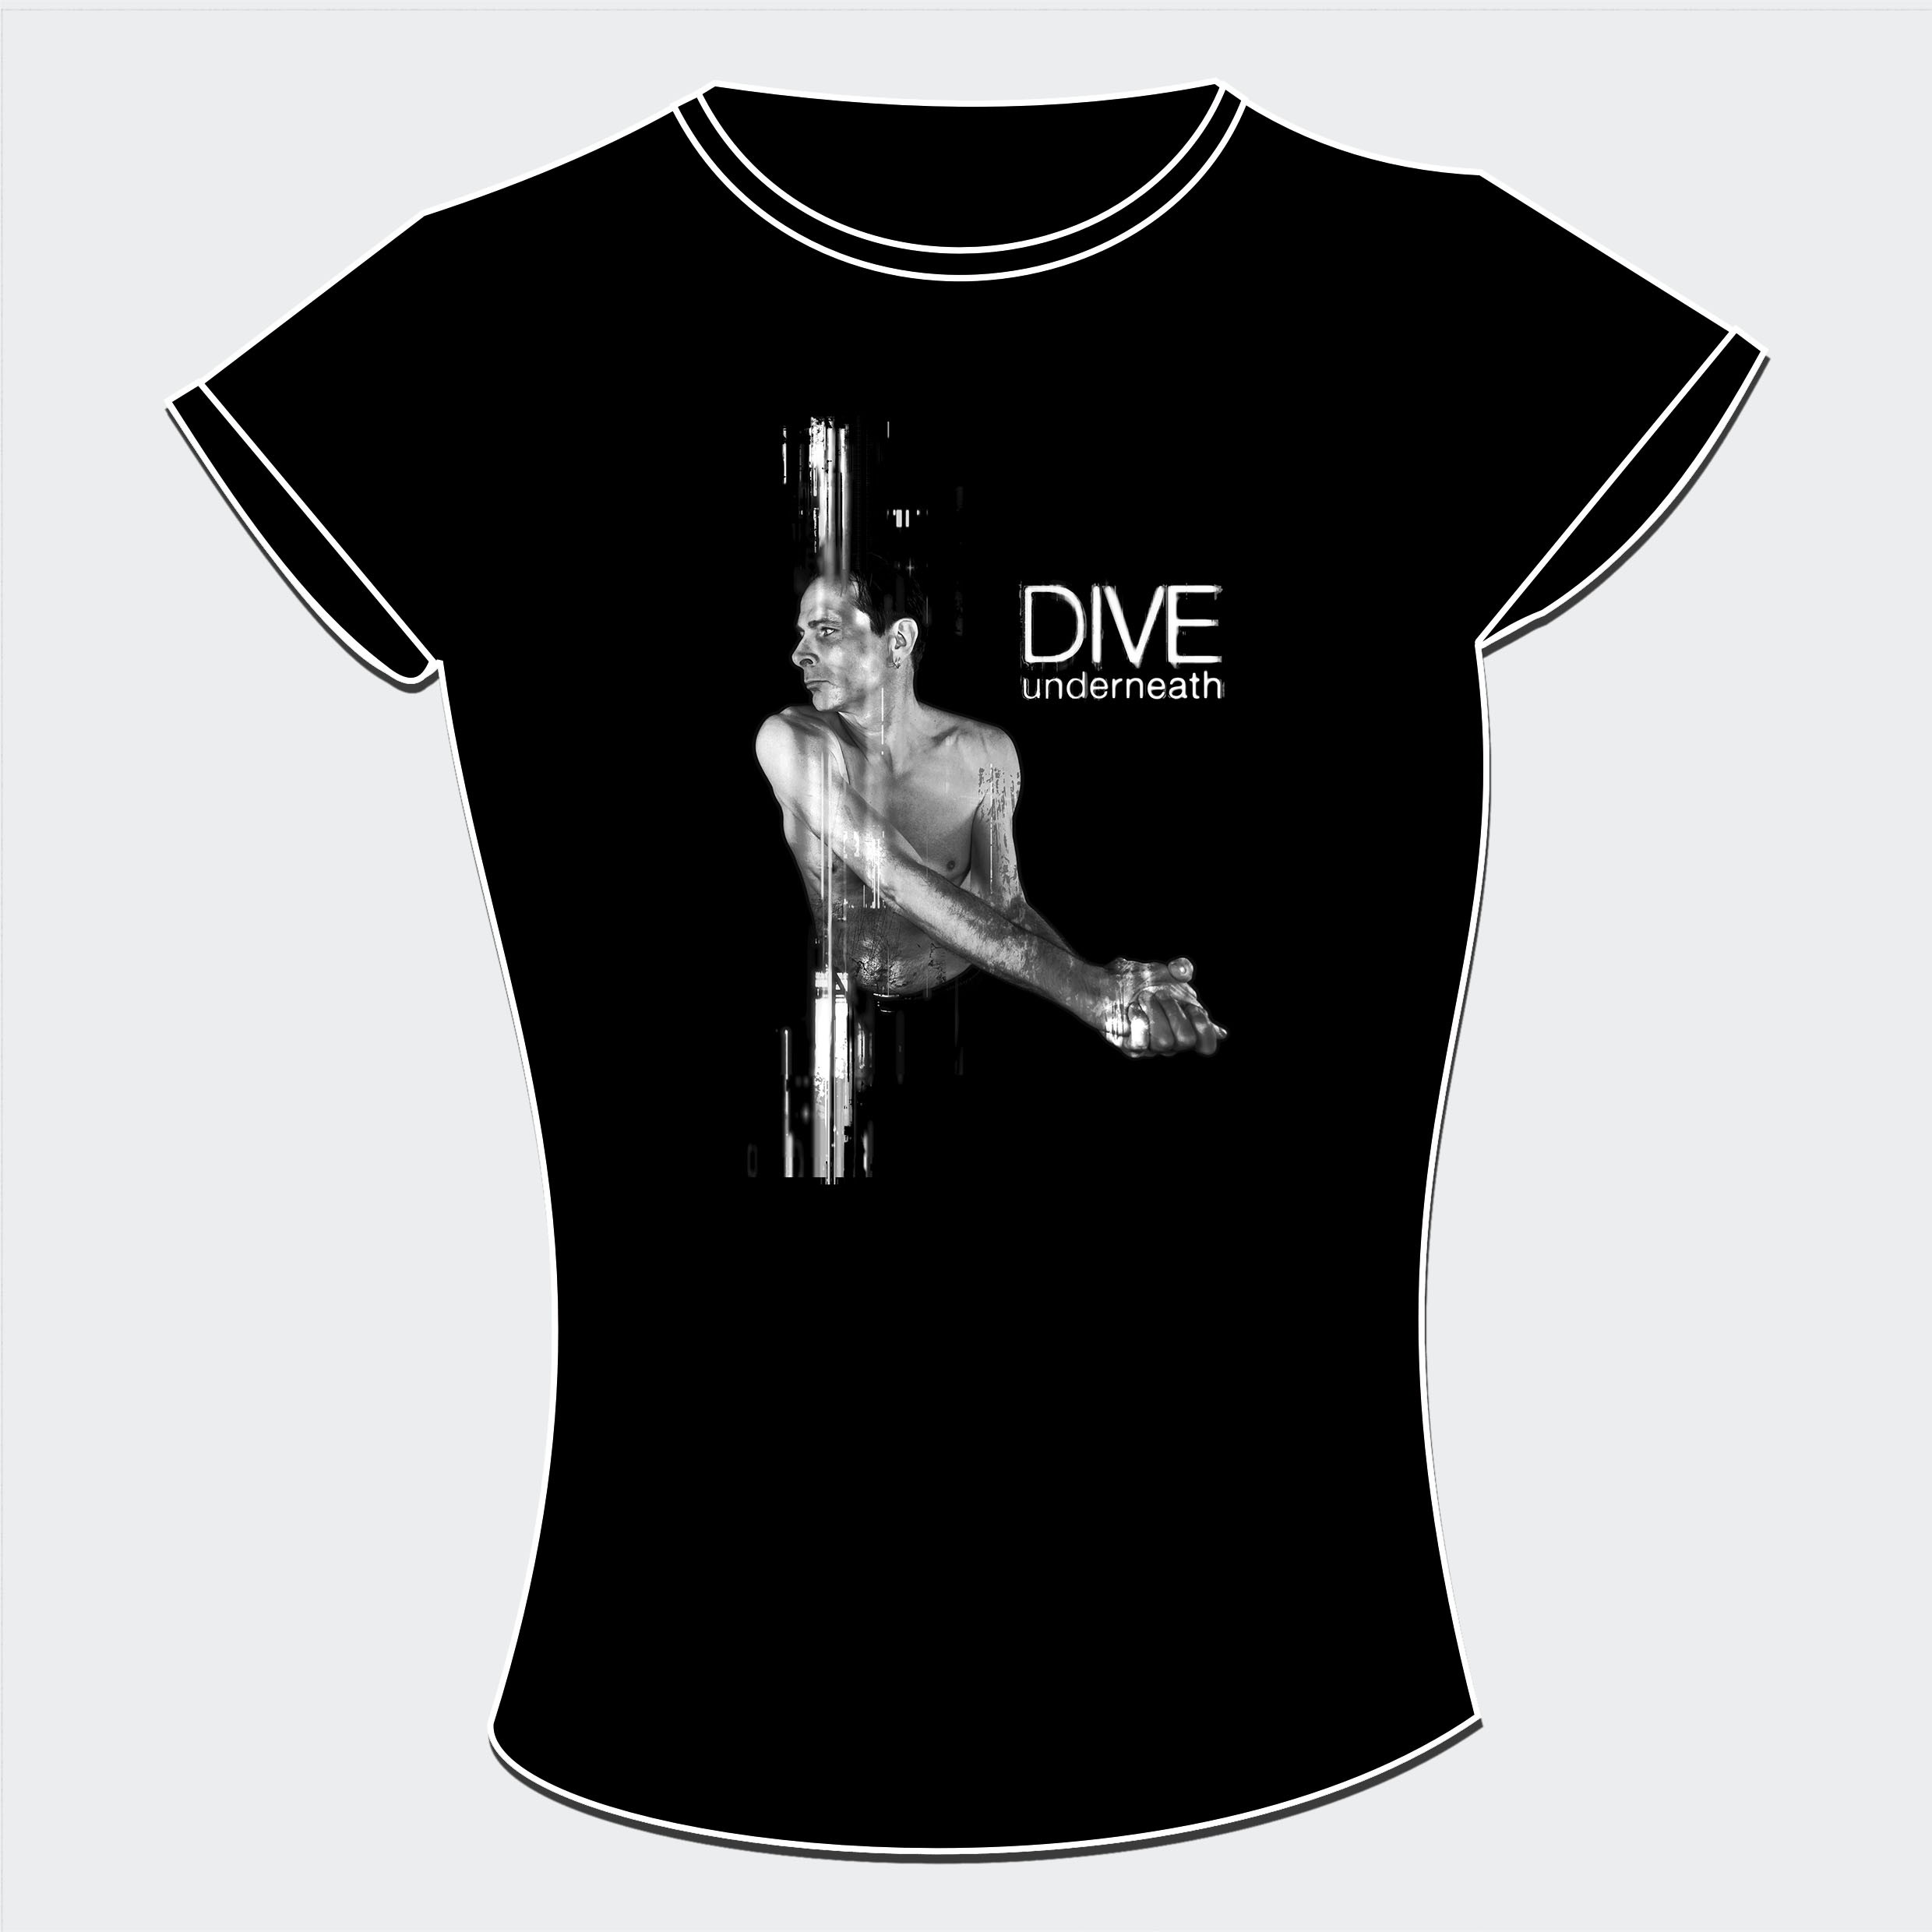 Dive - Underneath - Girlie-Shirt